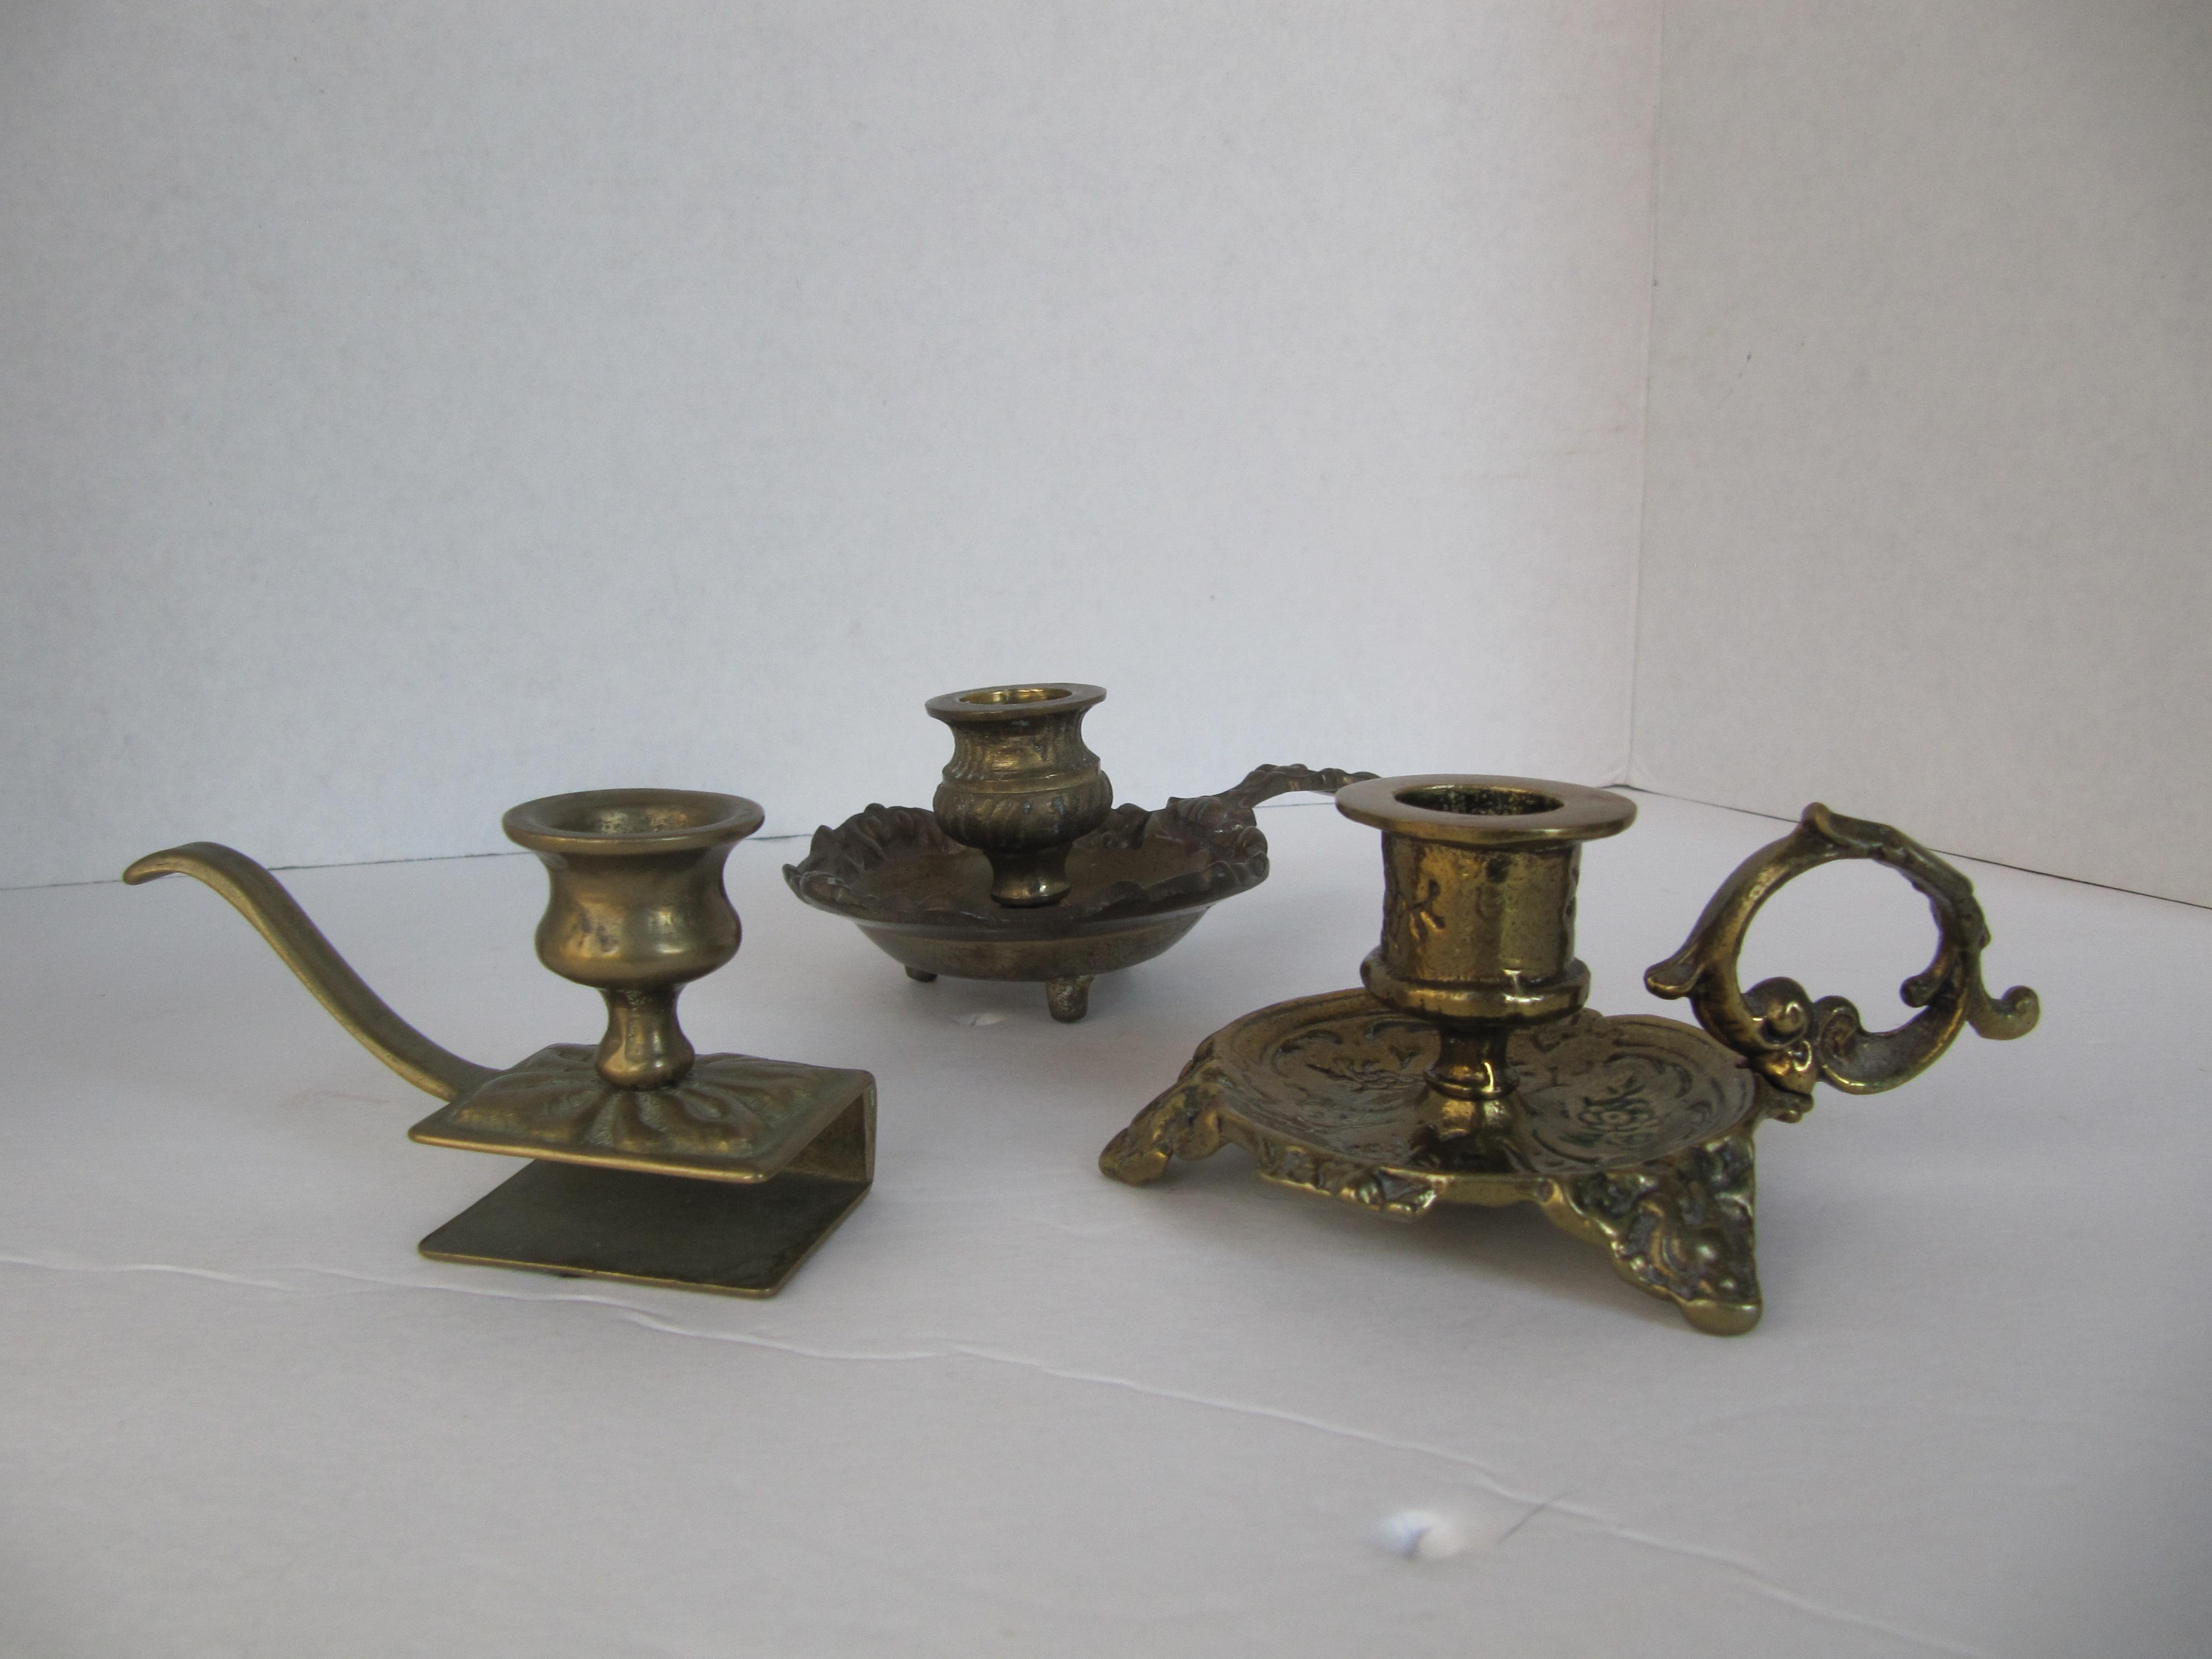 vintage brass candle holders set of 3 image 4 of 7